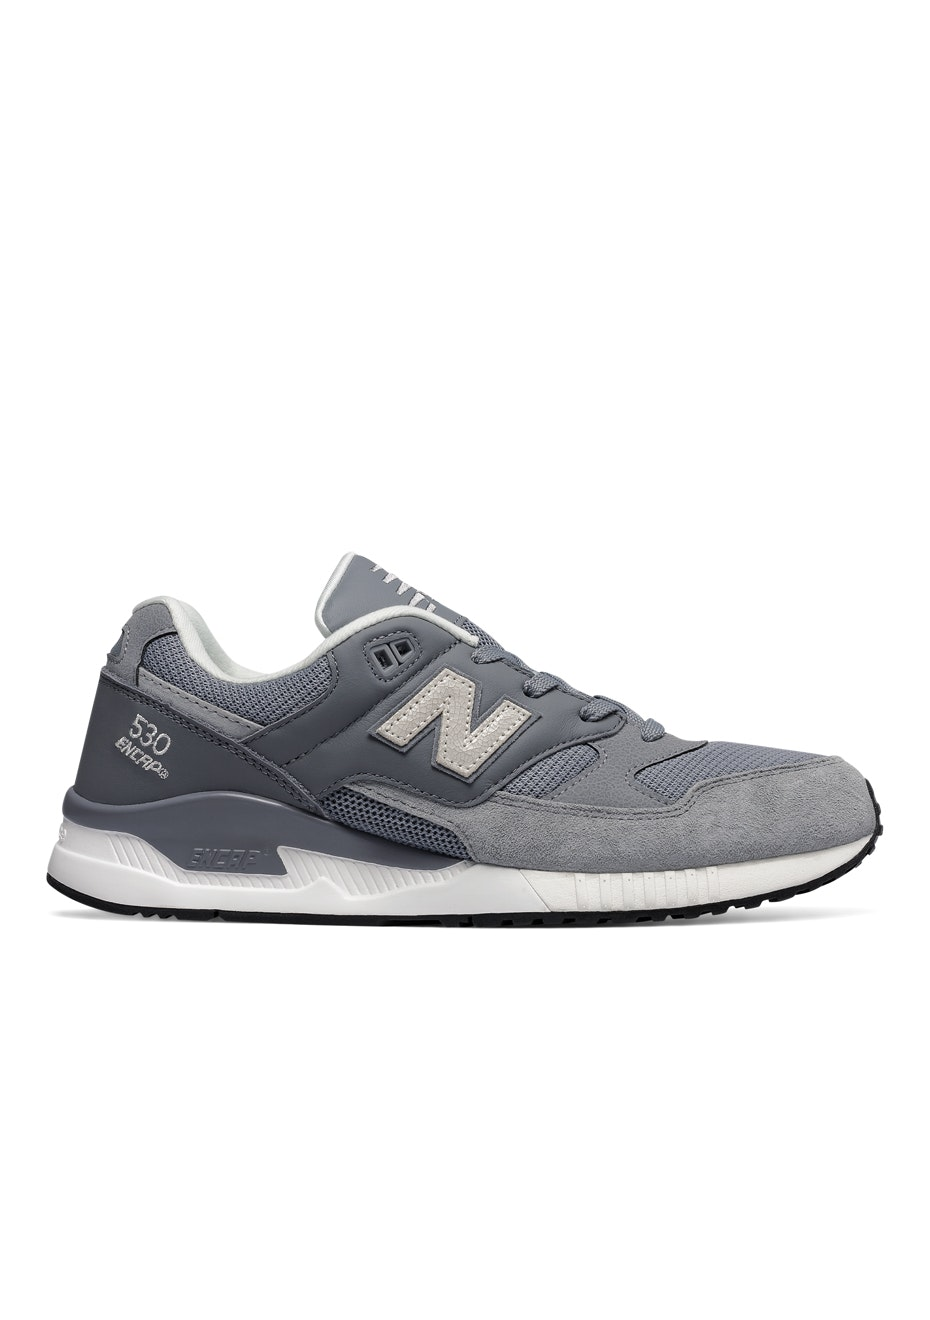 New Balance - Mens - 530 90'S Running - Grey / Cream